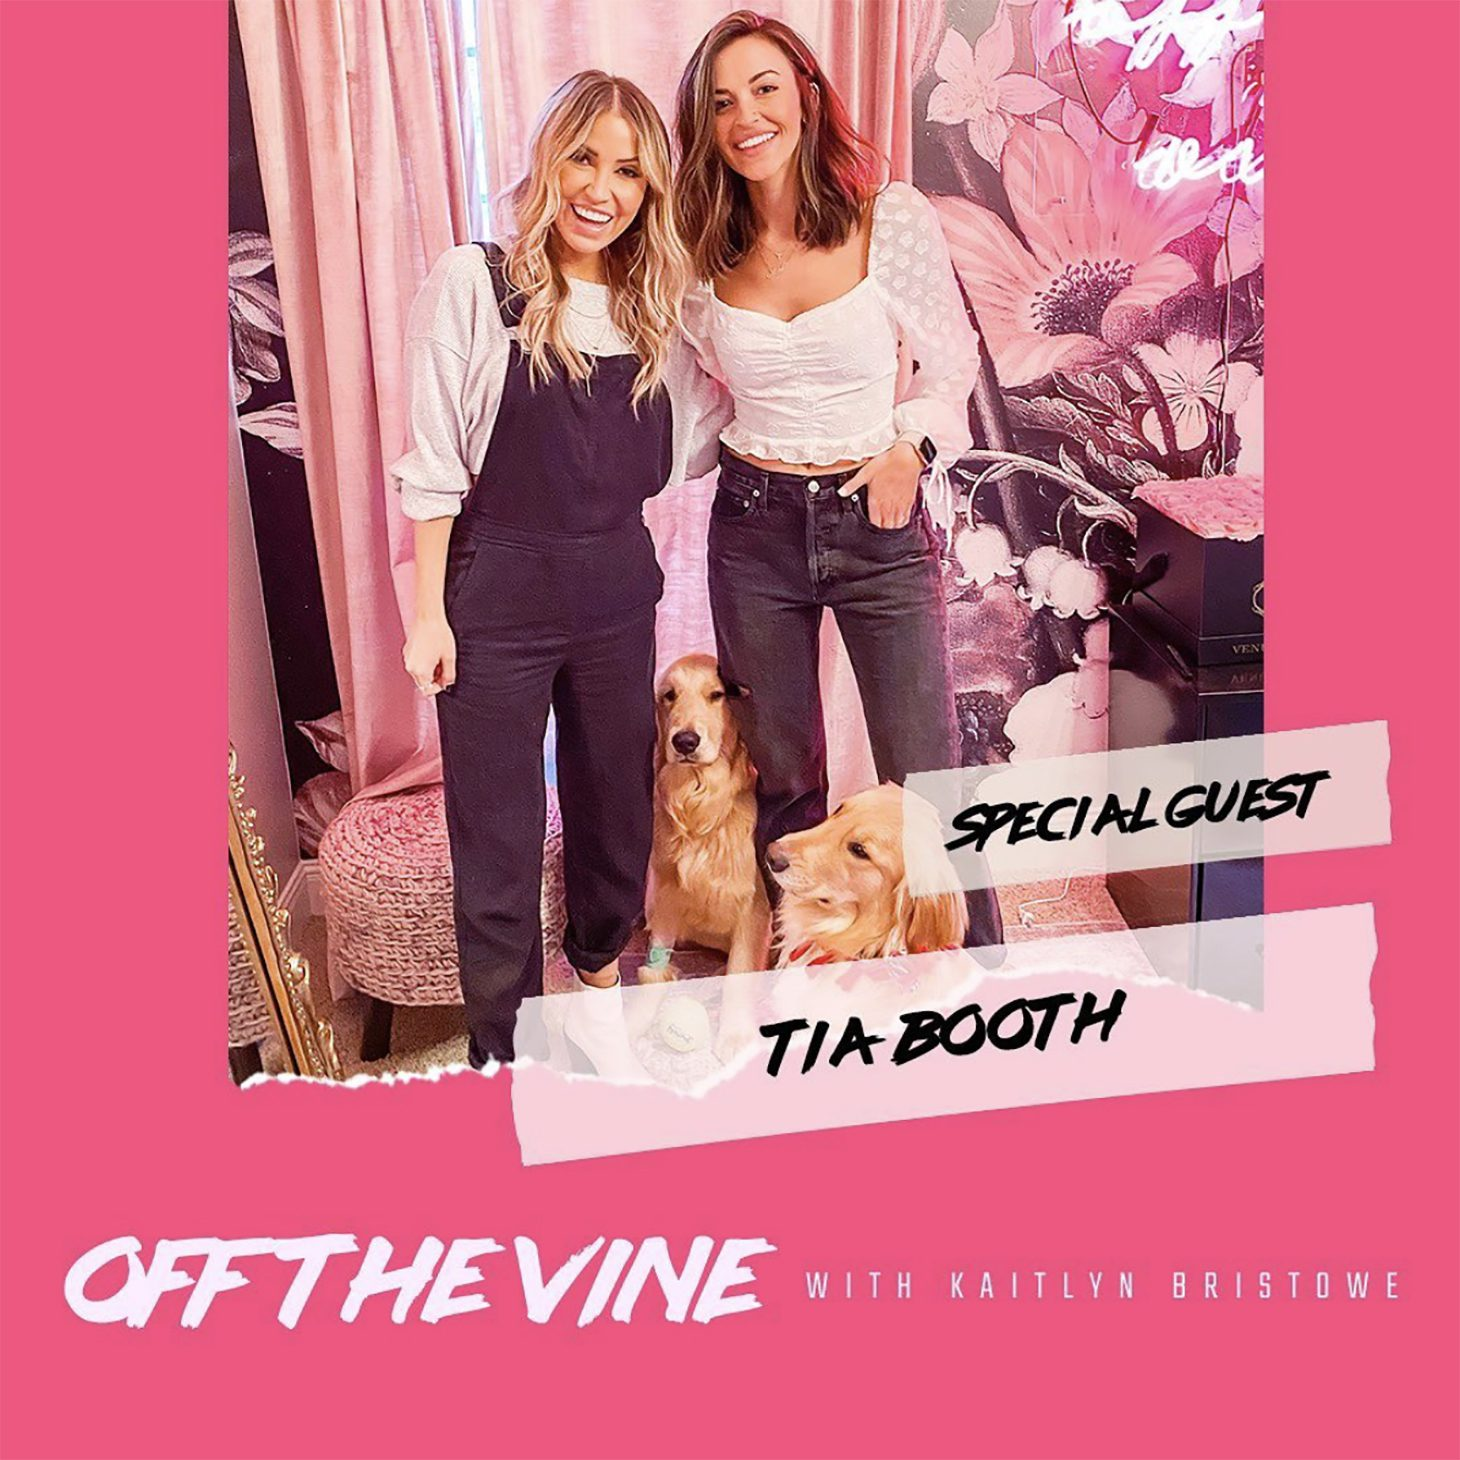 Off The Vine Podcast with Kaitlyn Bristowe